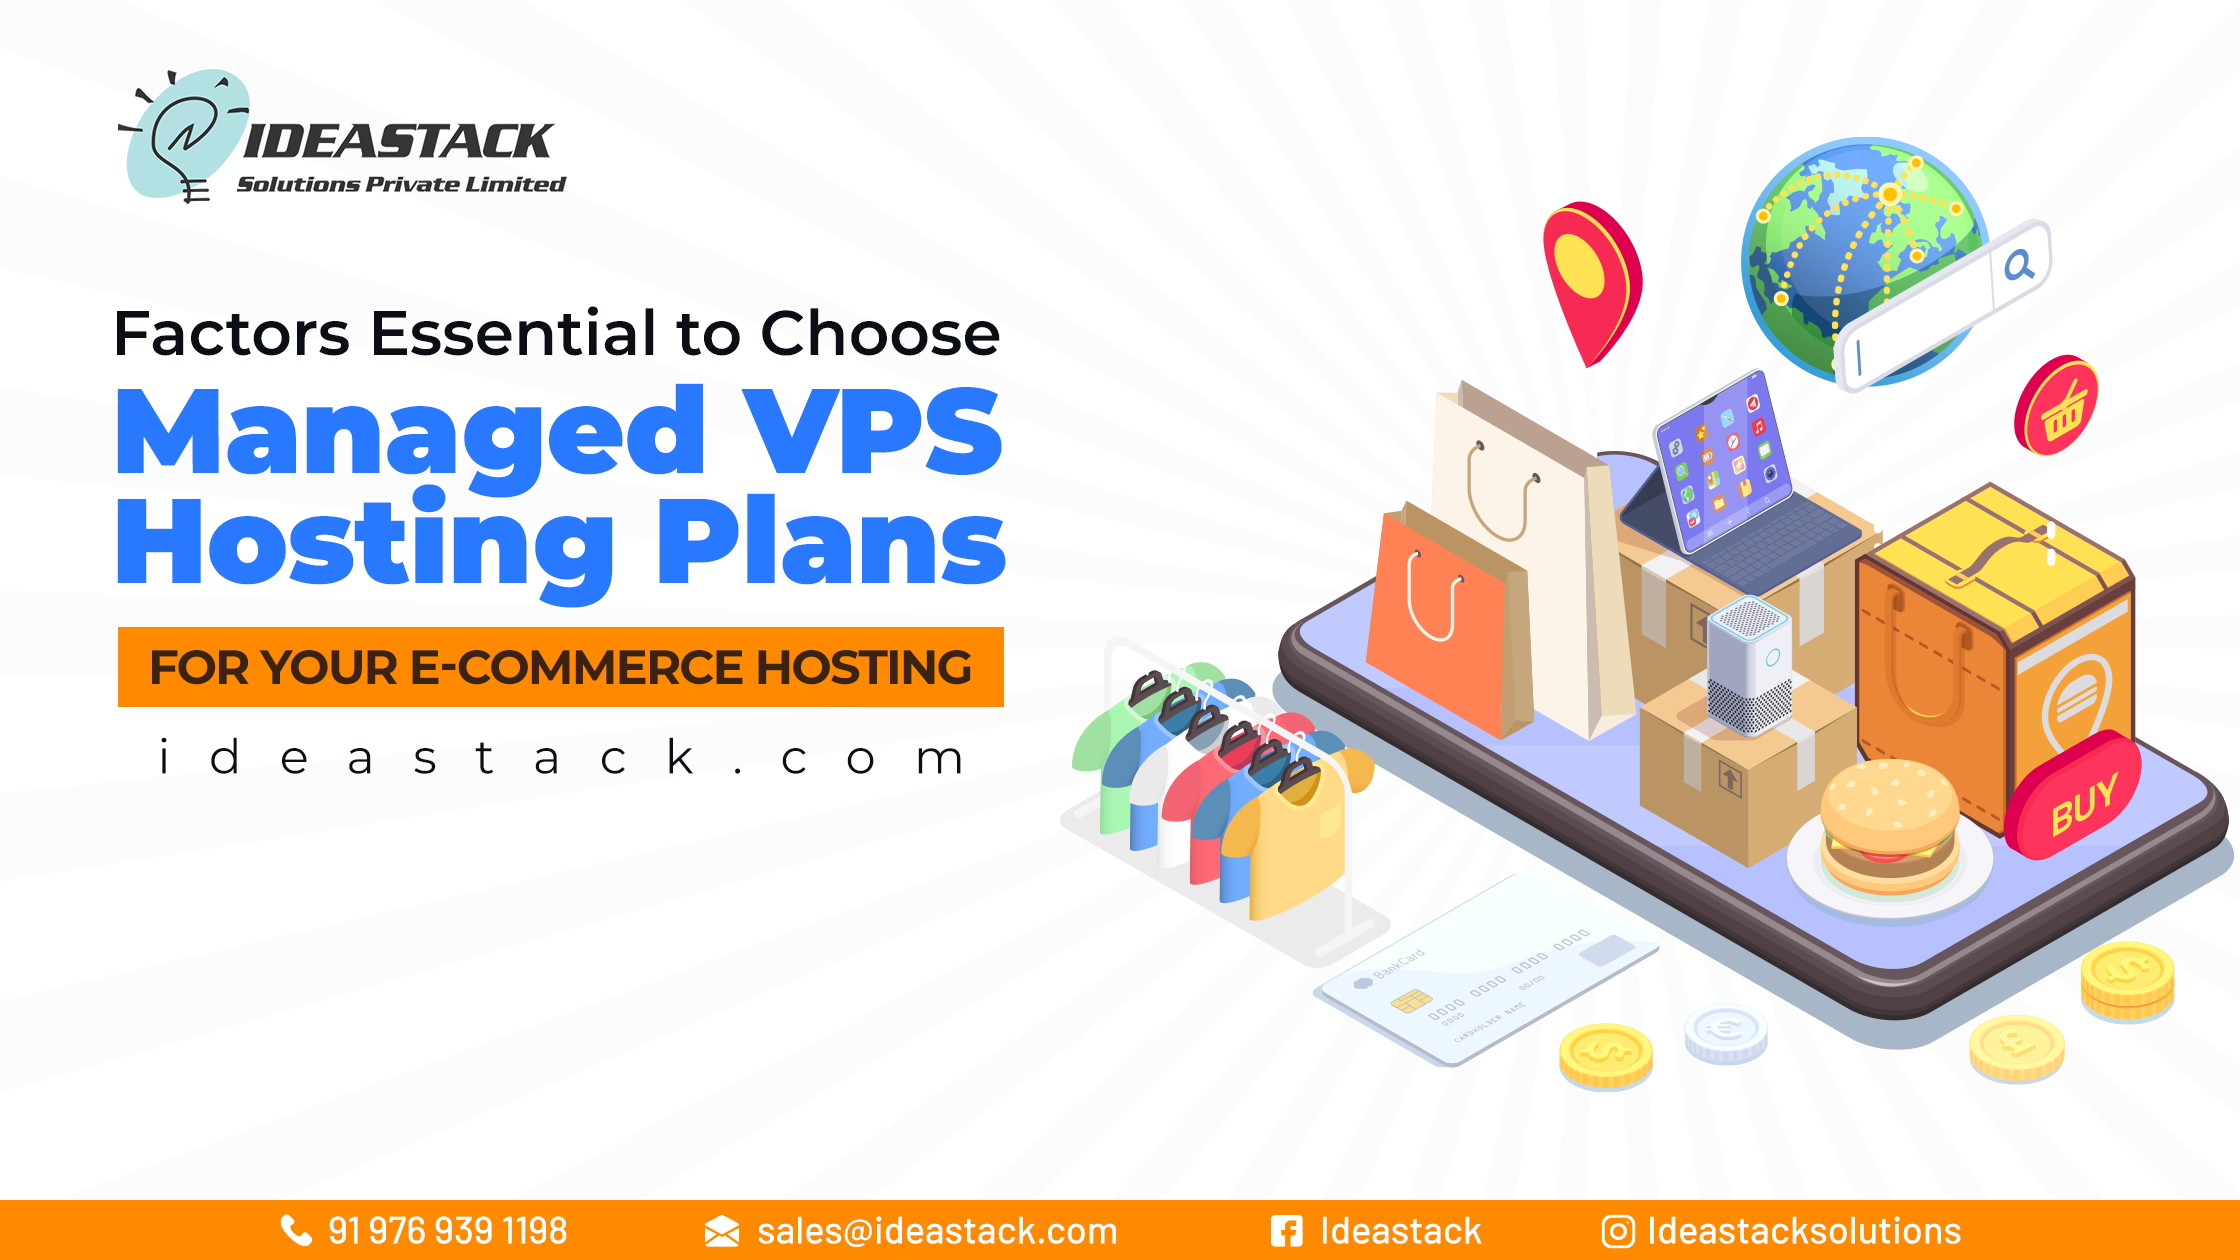 Factors Essential To Choose Managed VPS Hosting Plans For Your E-Commerce Hosting